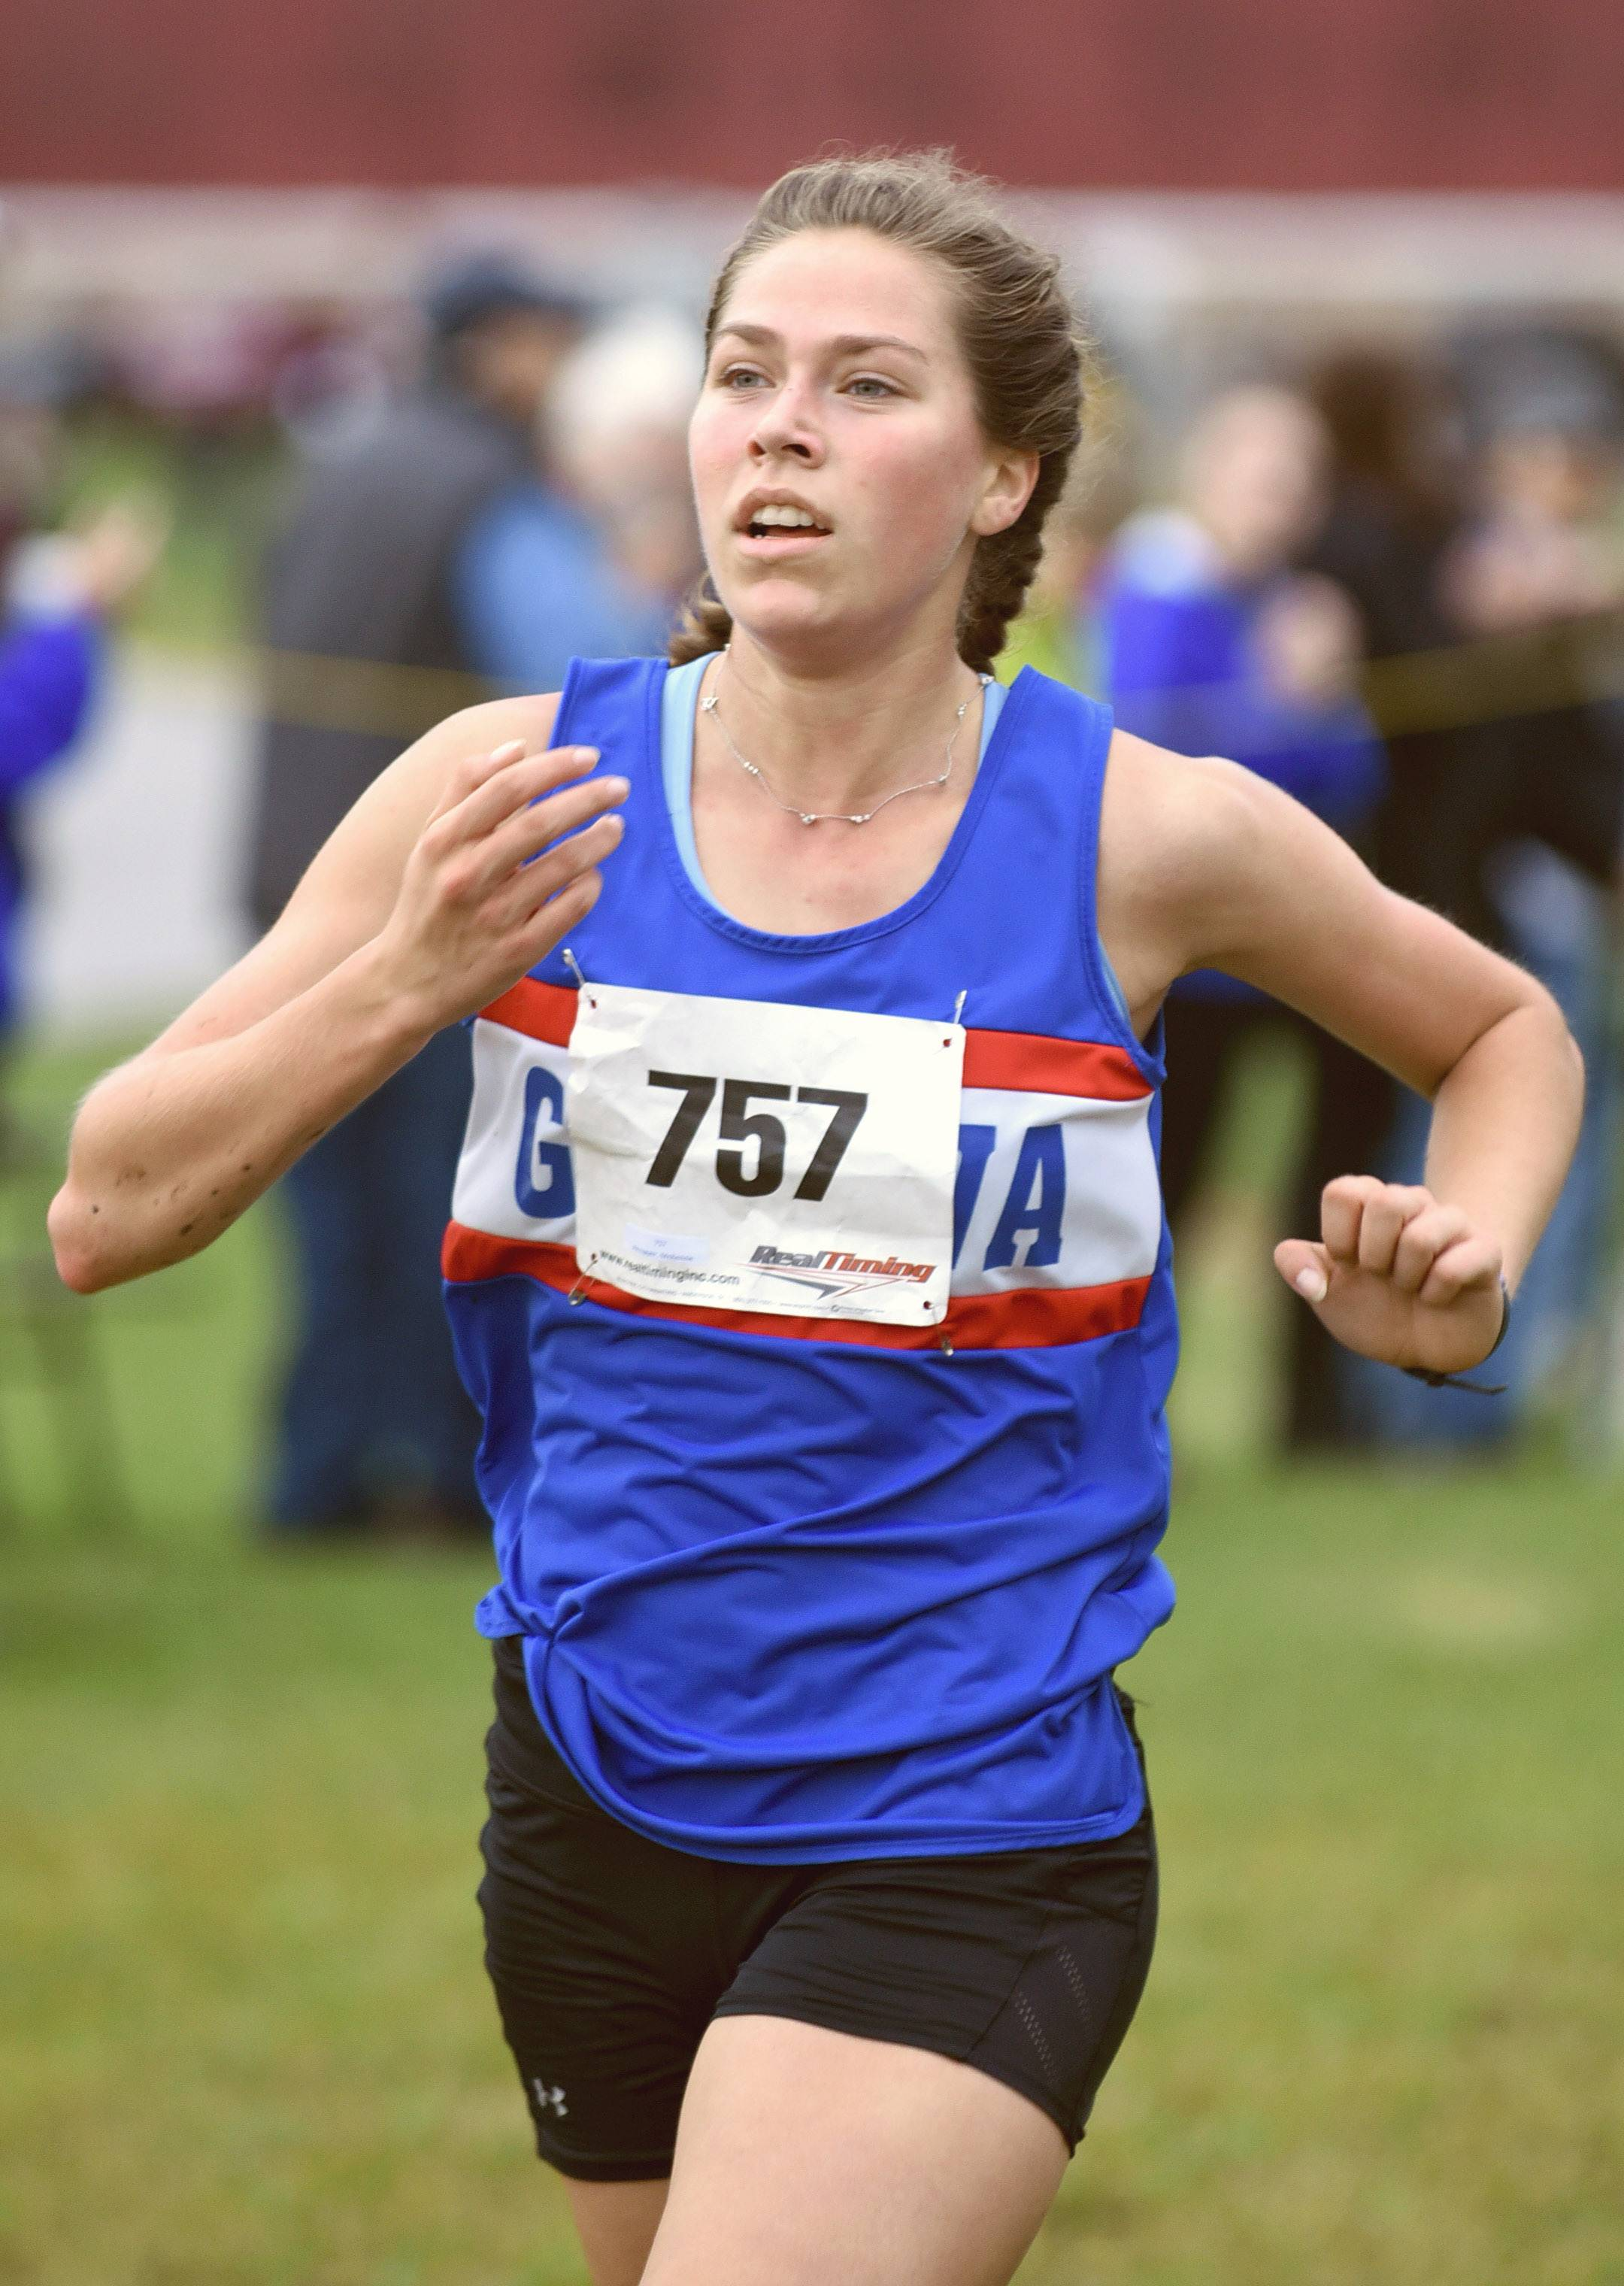 Geneva's McKenzie Altmayer takes first place in the girls varsity race with a time of 18:04.2  at the St. Charles North cross country regional on Saturday.